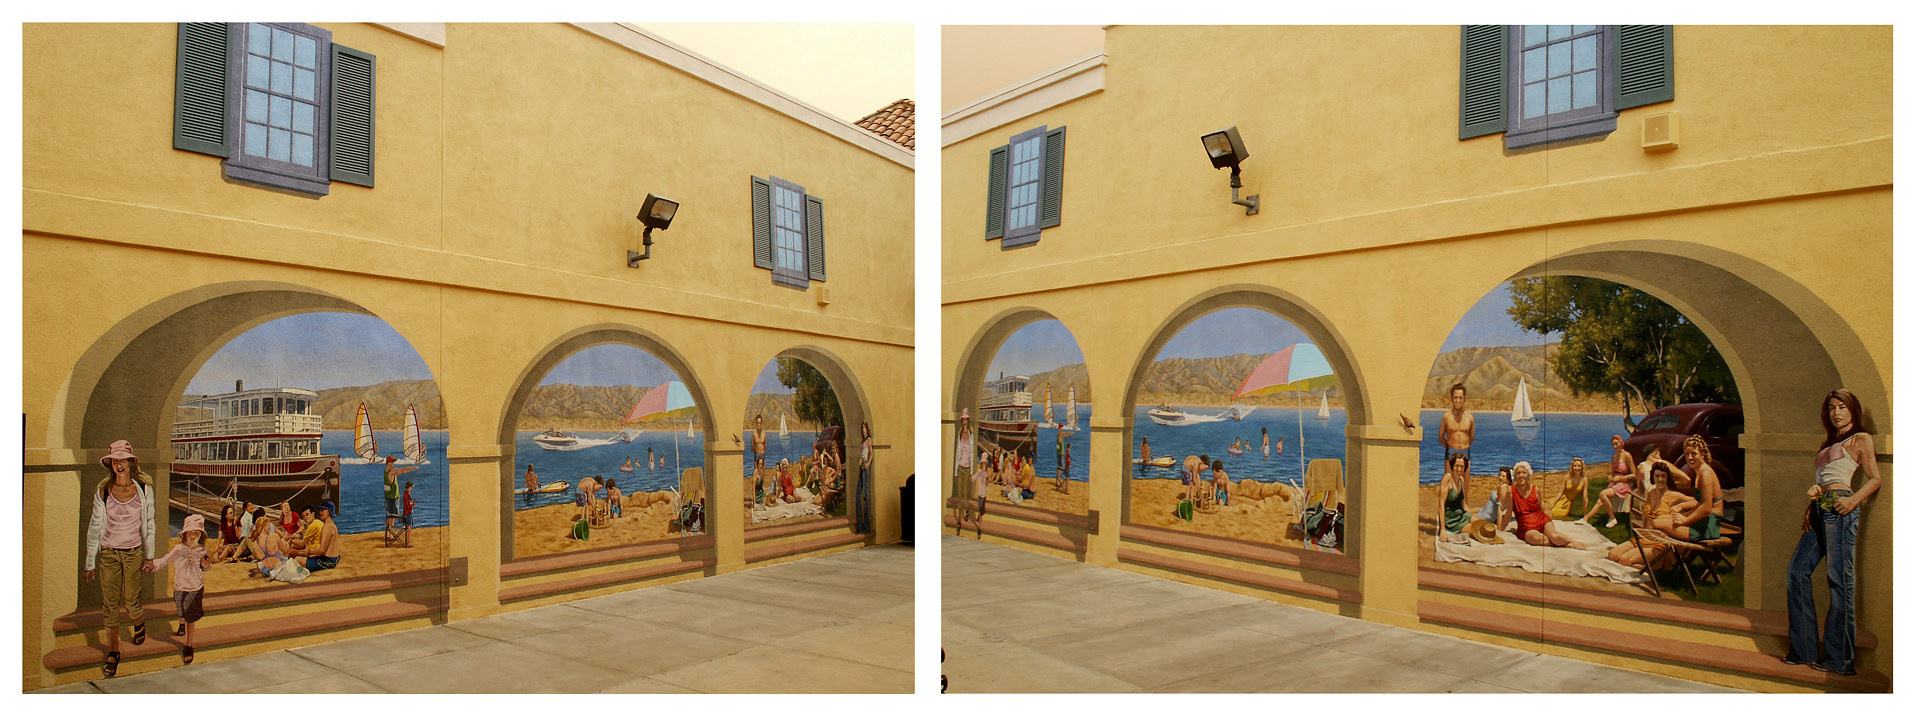 Elsinore Outlet Mall Mural Project 2 by Robert Milling